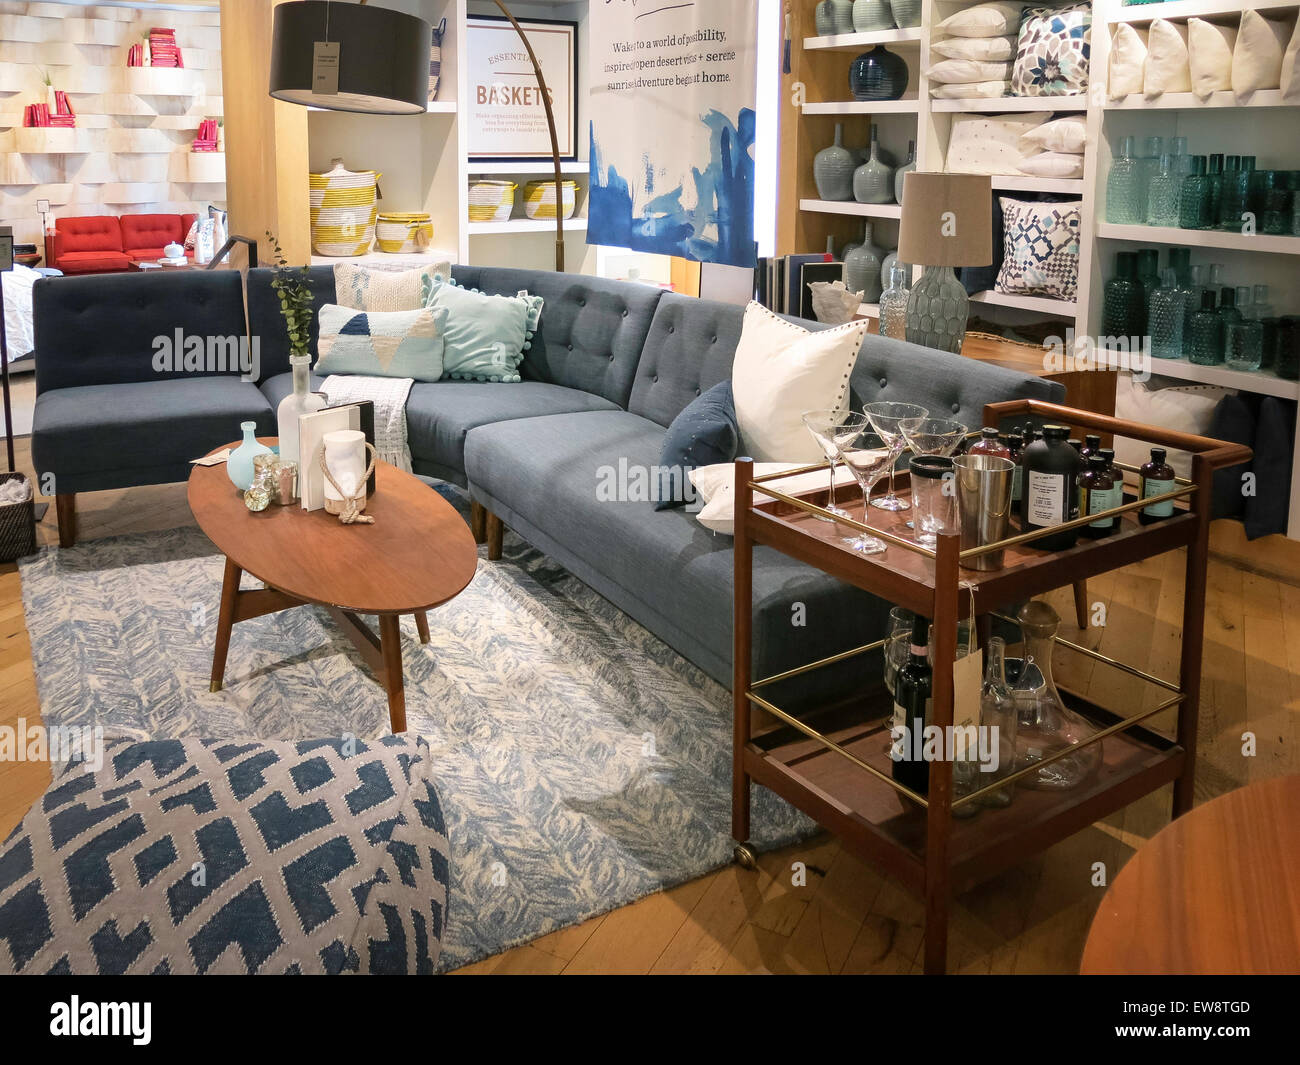 Charming West Elm Home Furnishings Store, NYC, USA